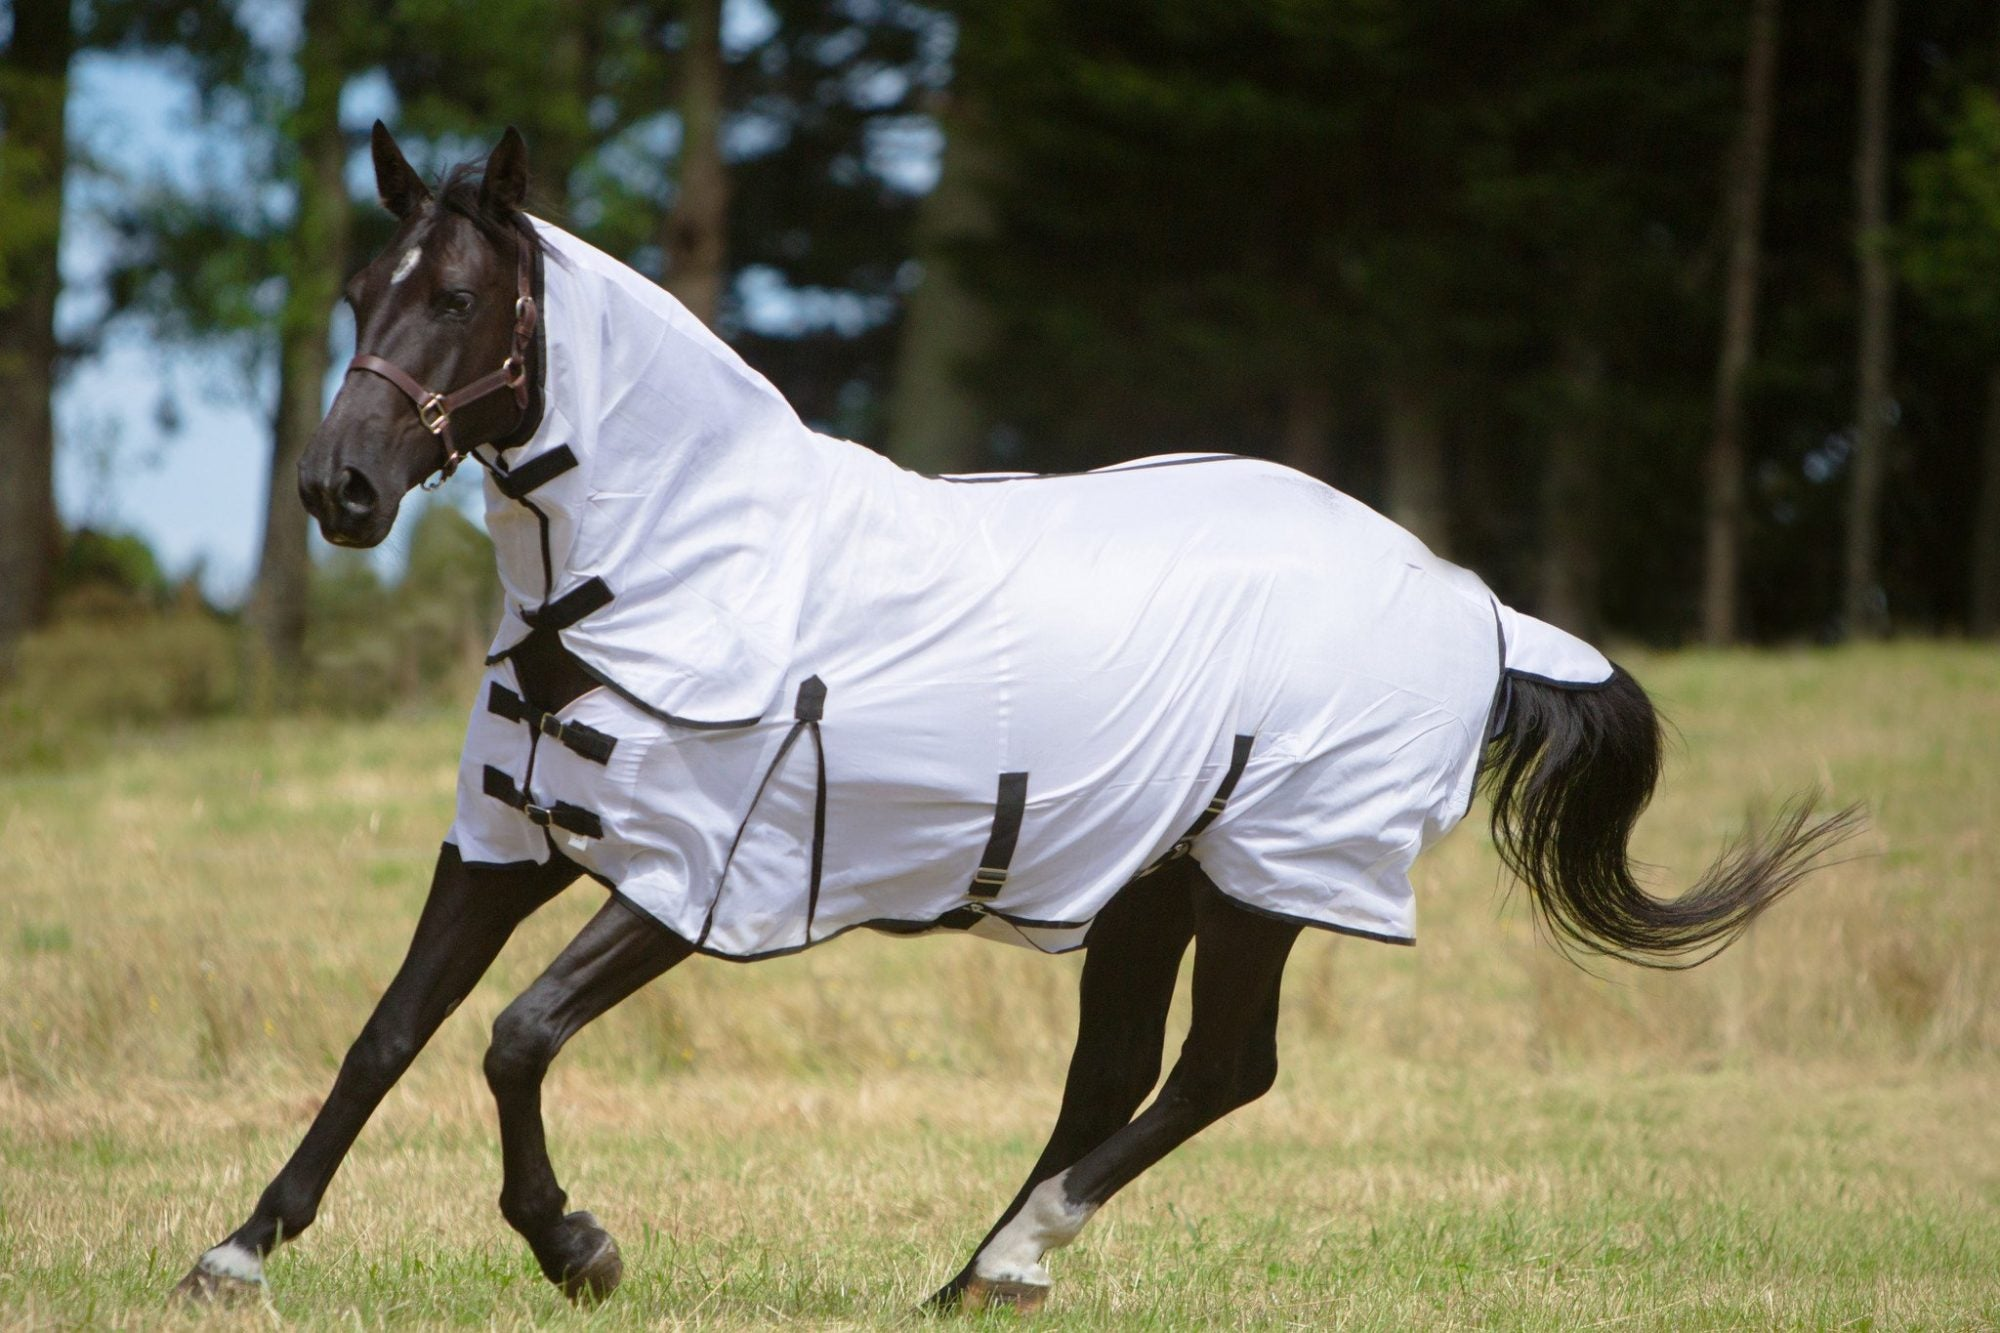 Horse cover sizing chart - how to choose the right rug for